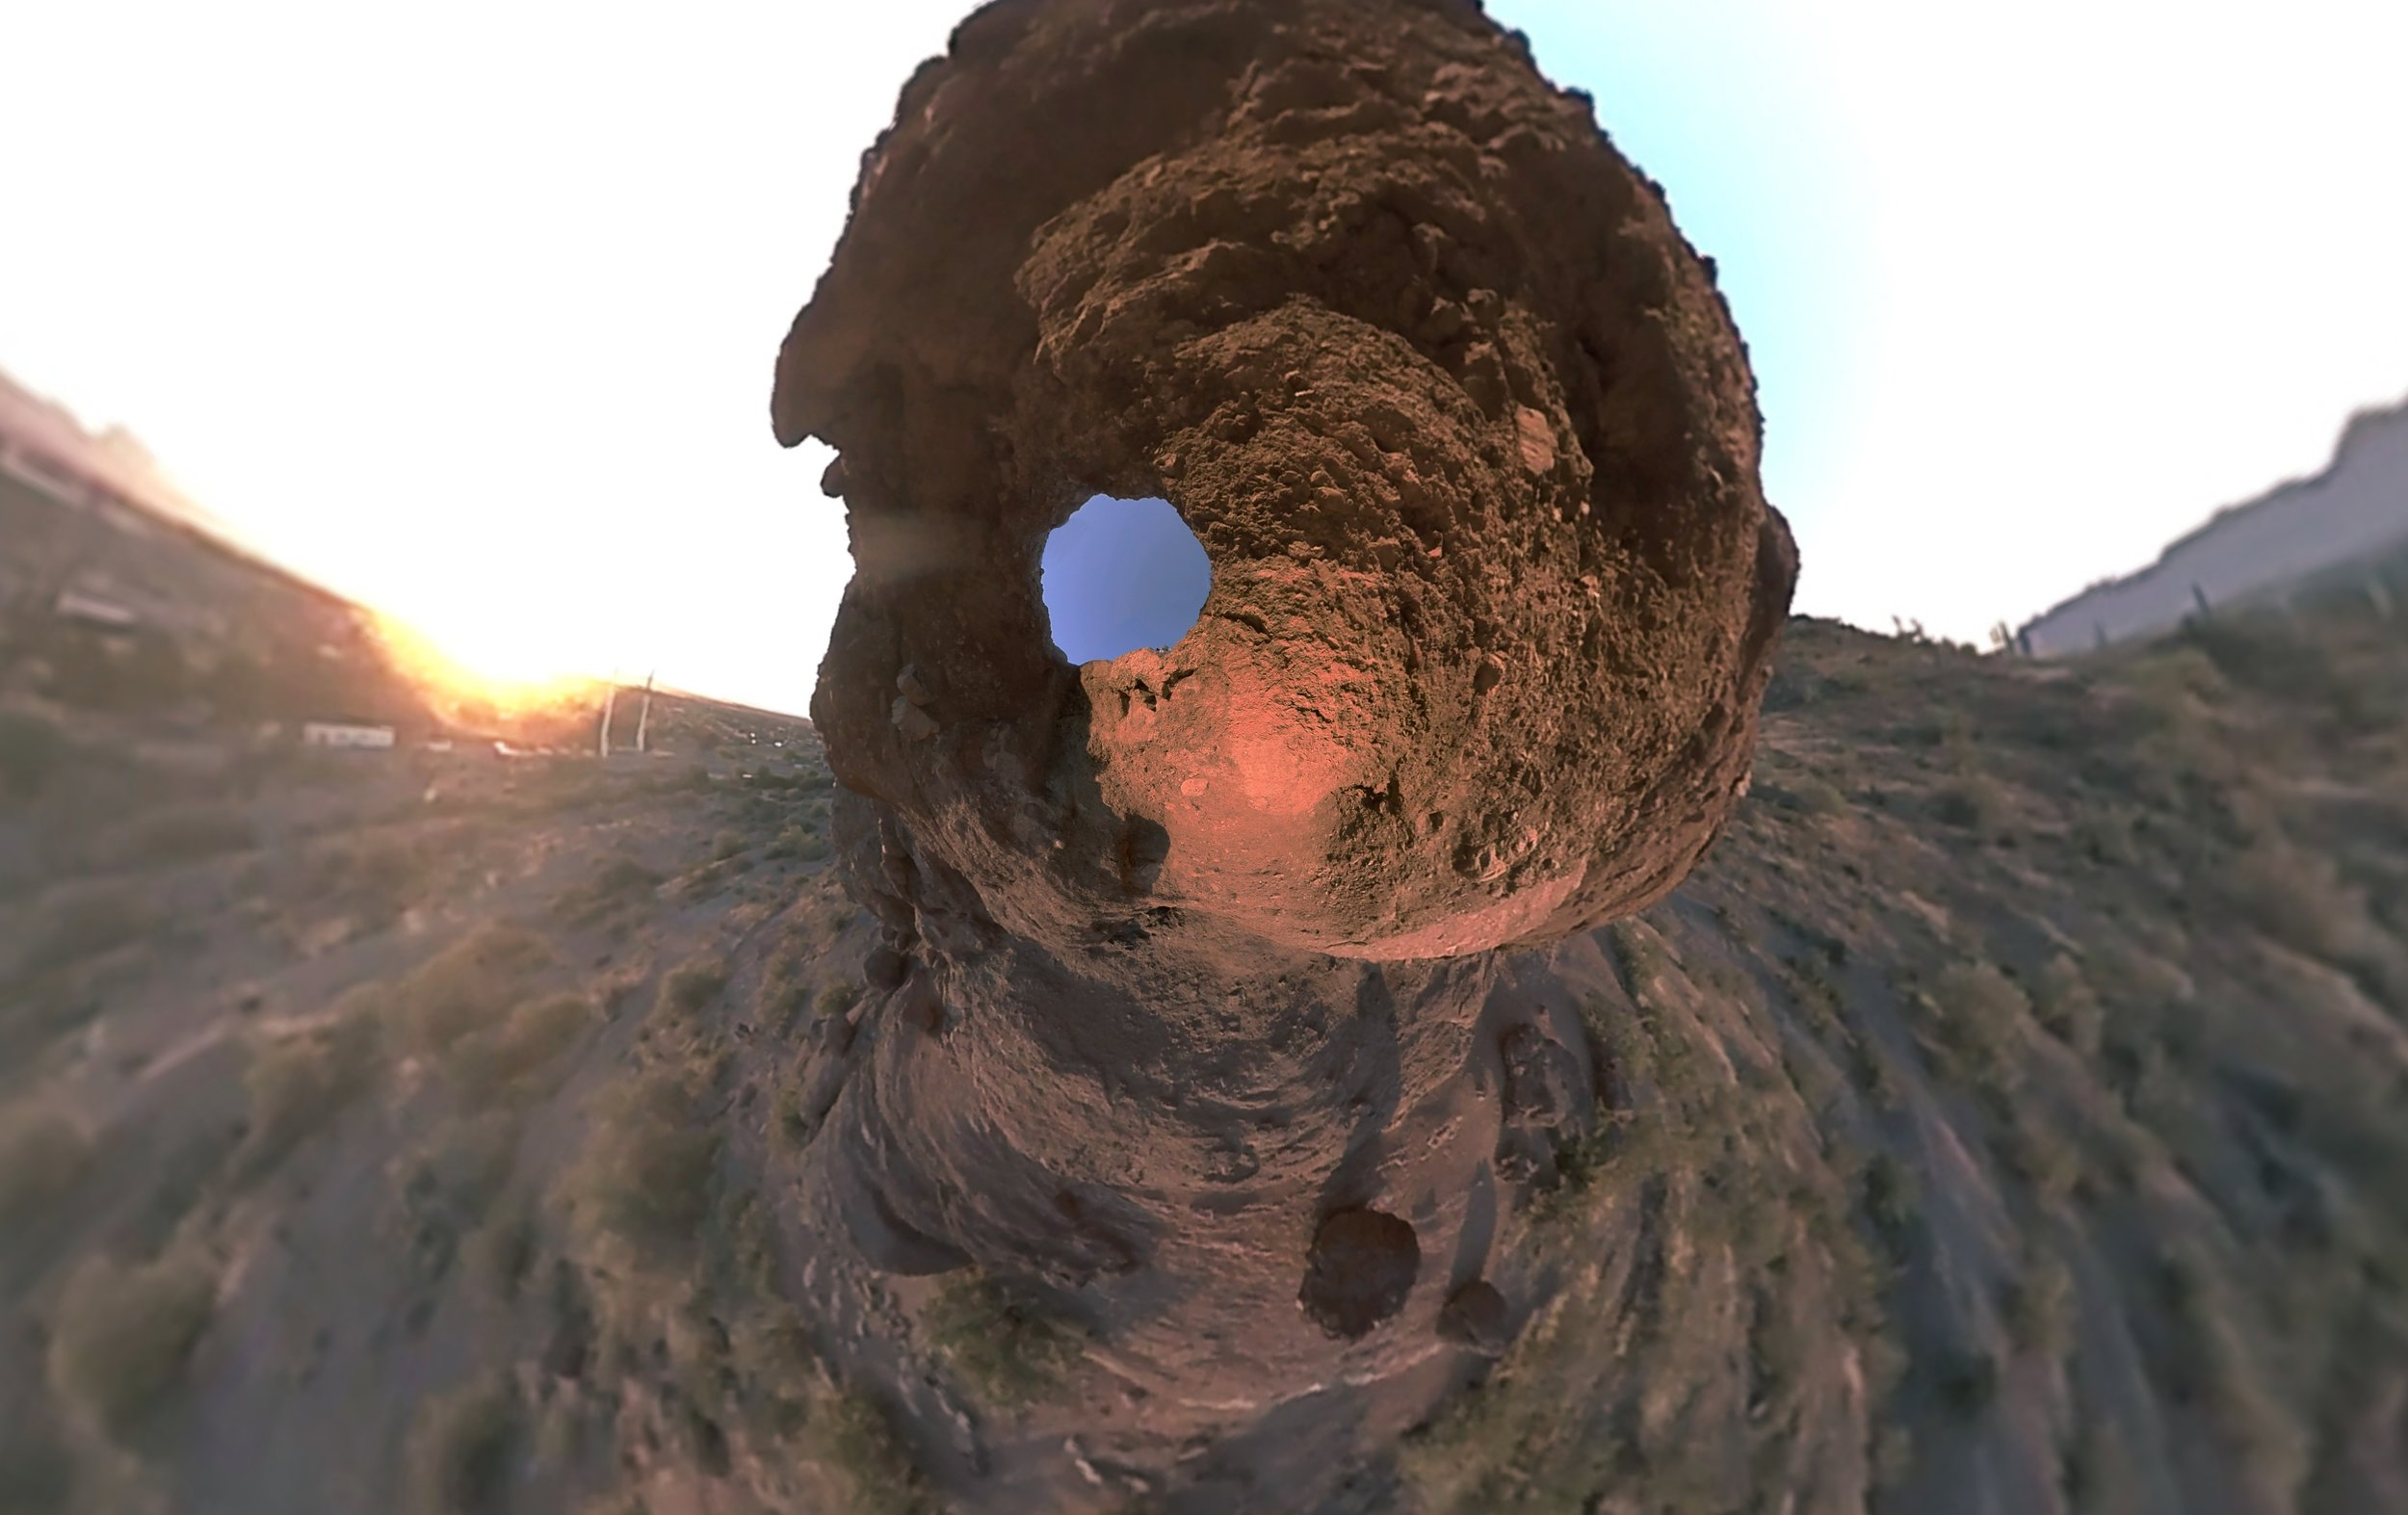 Hole in the Rock .jpg screenshot 2019-07-09 01-27-41.jpg